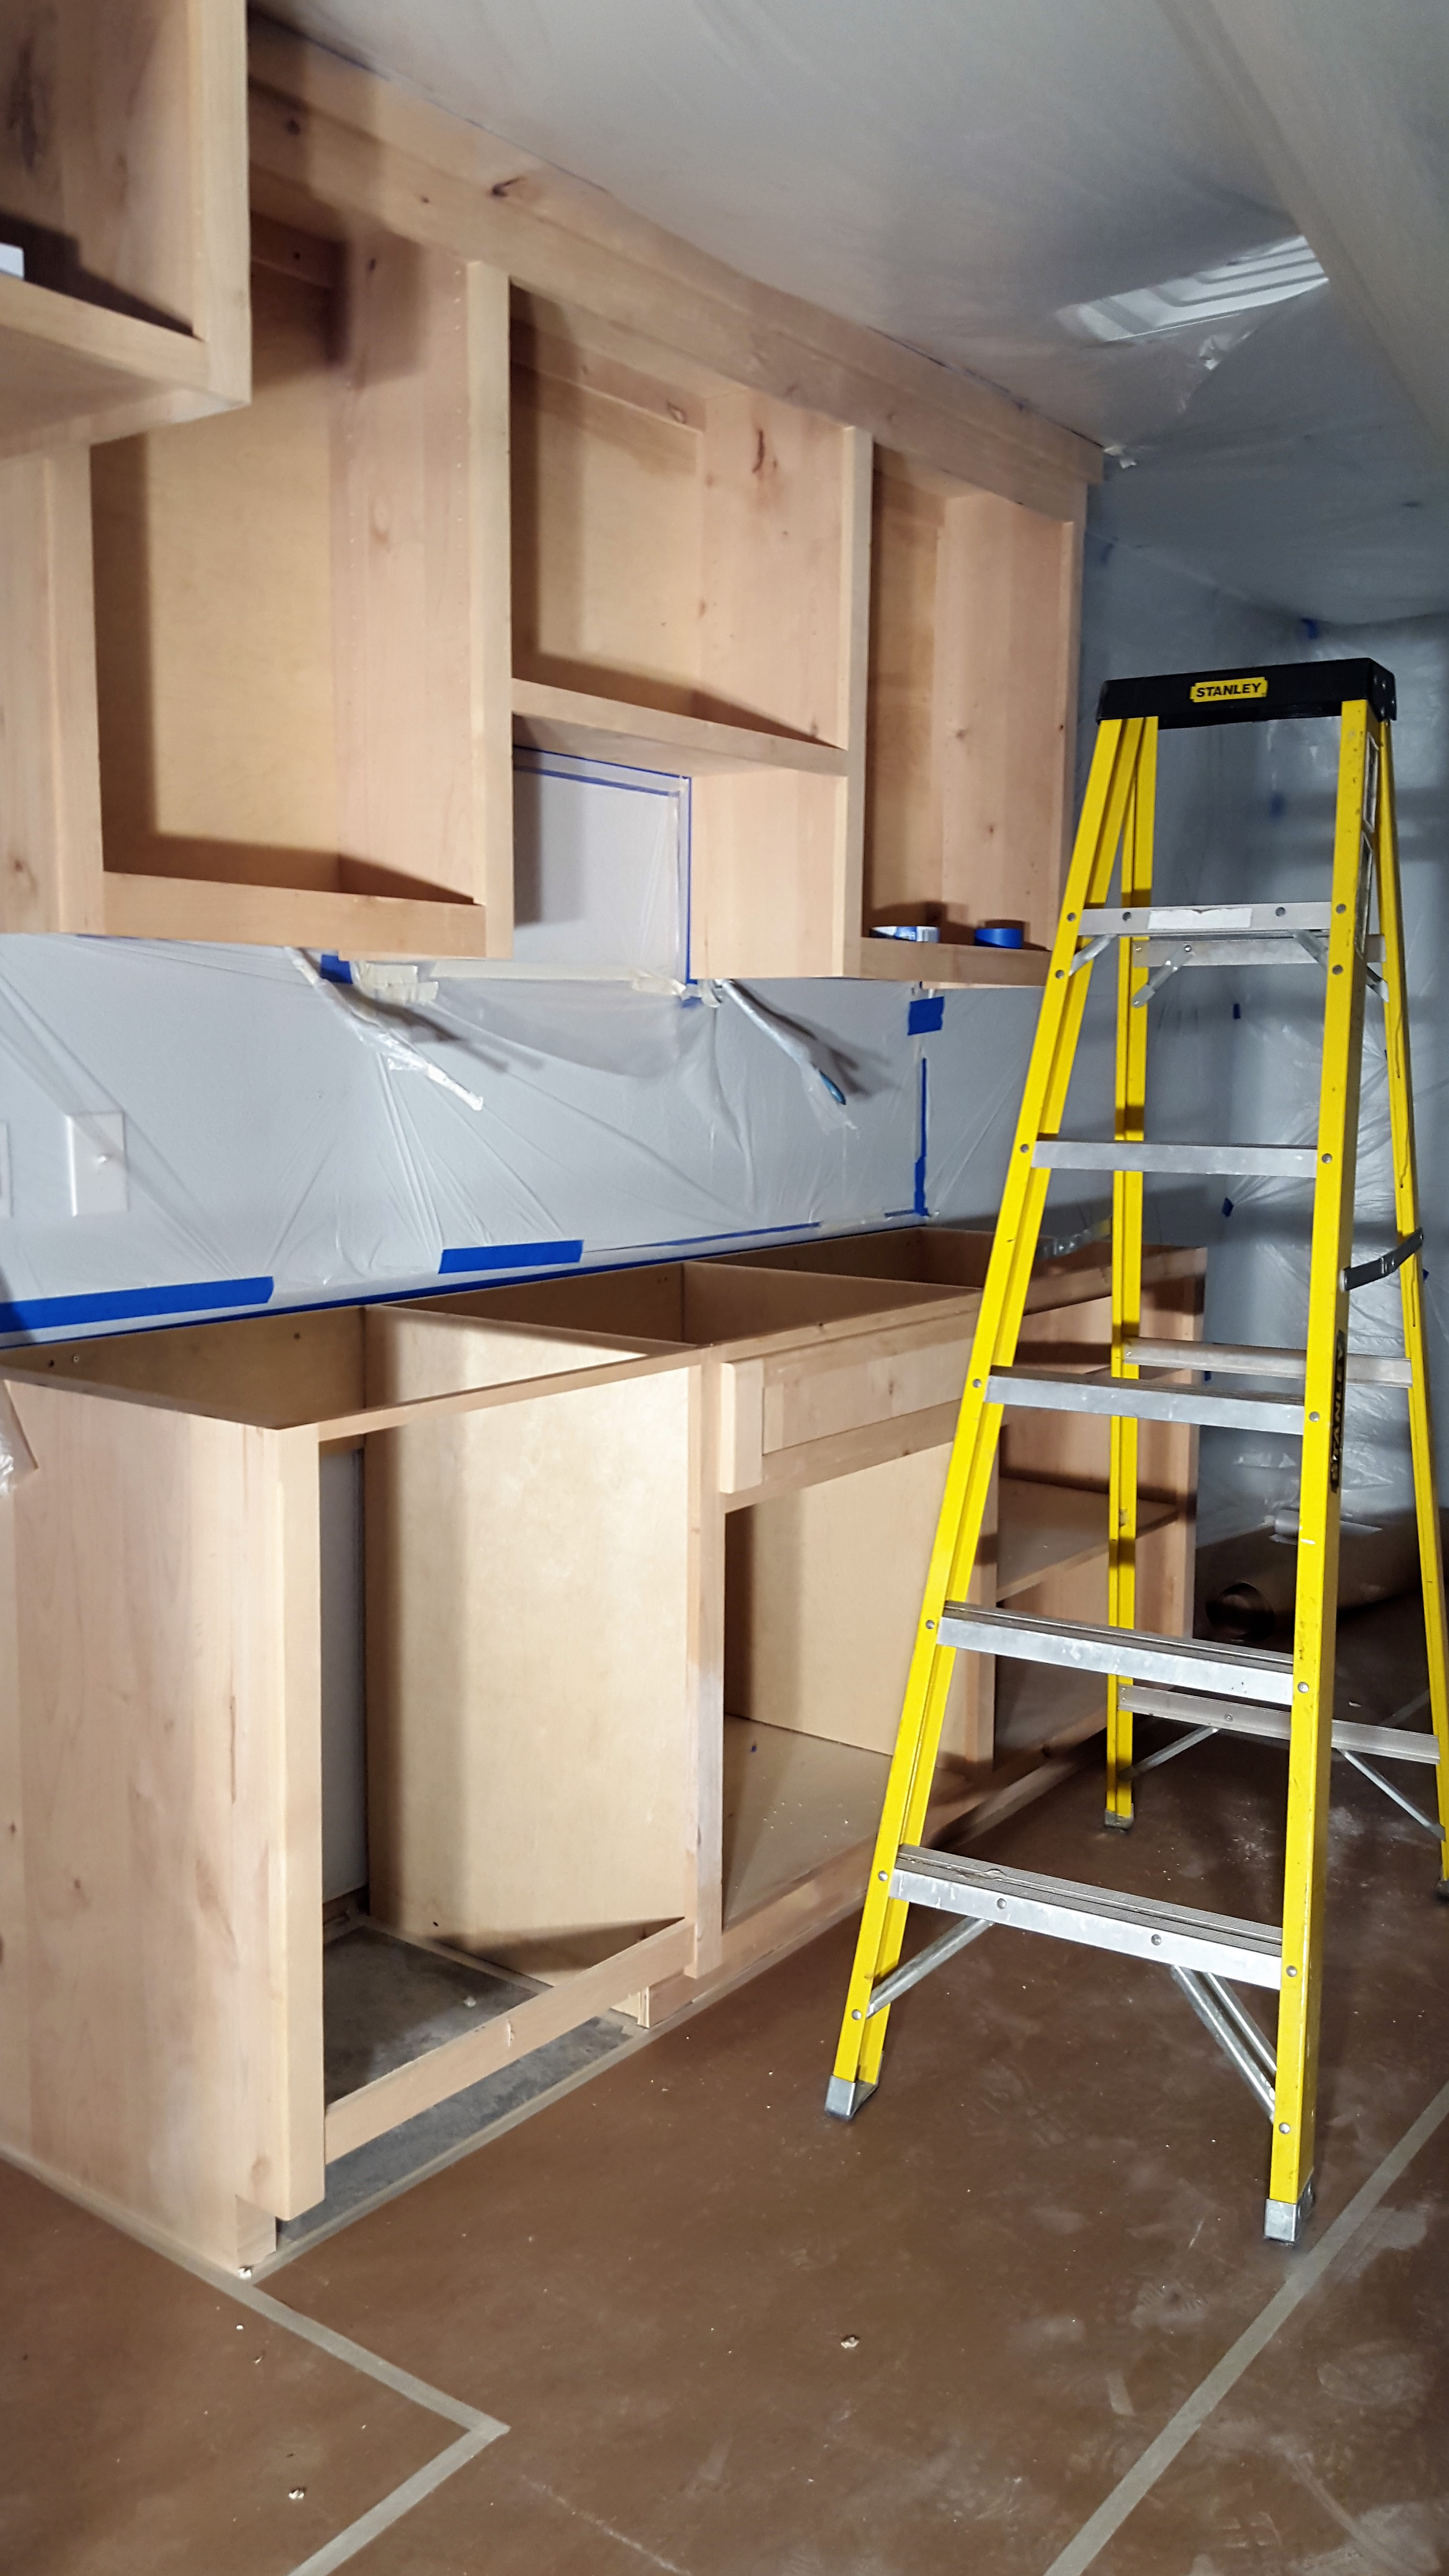 Library Expansion - Construciton - 10-10-16 -19.jpg